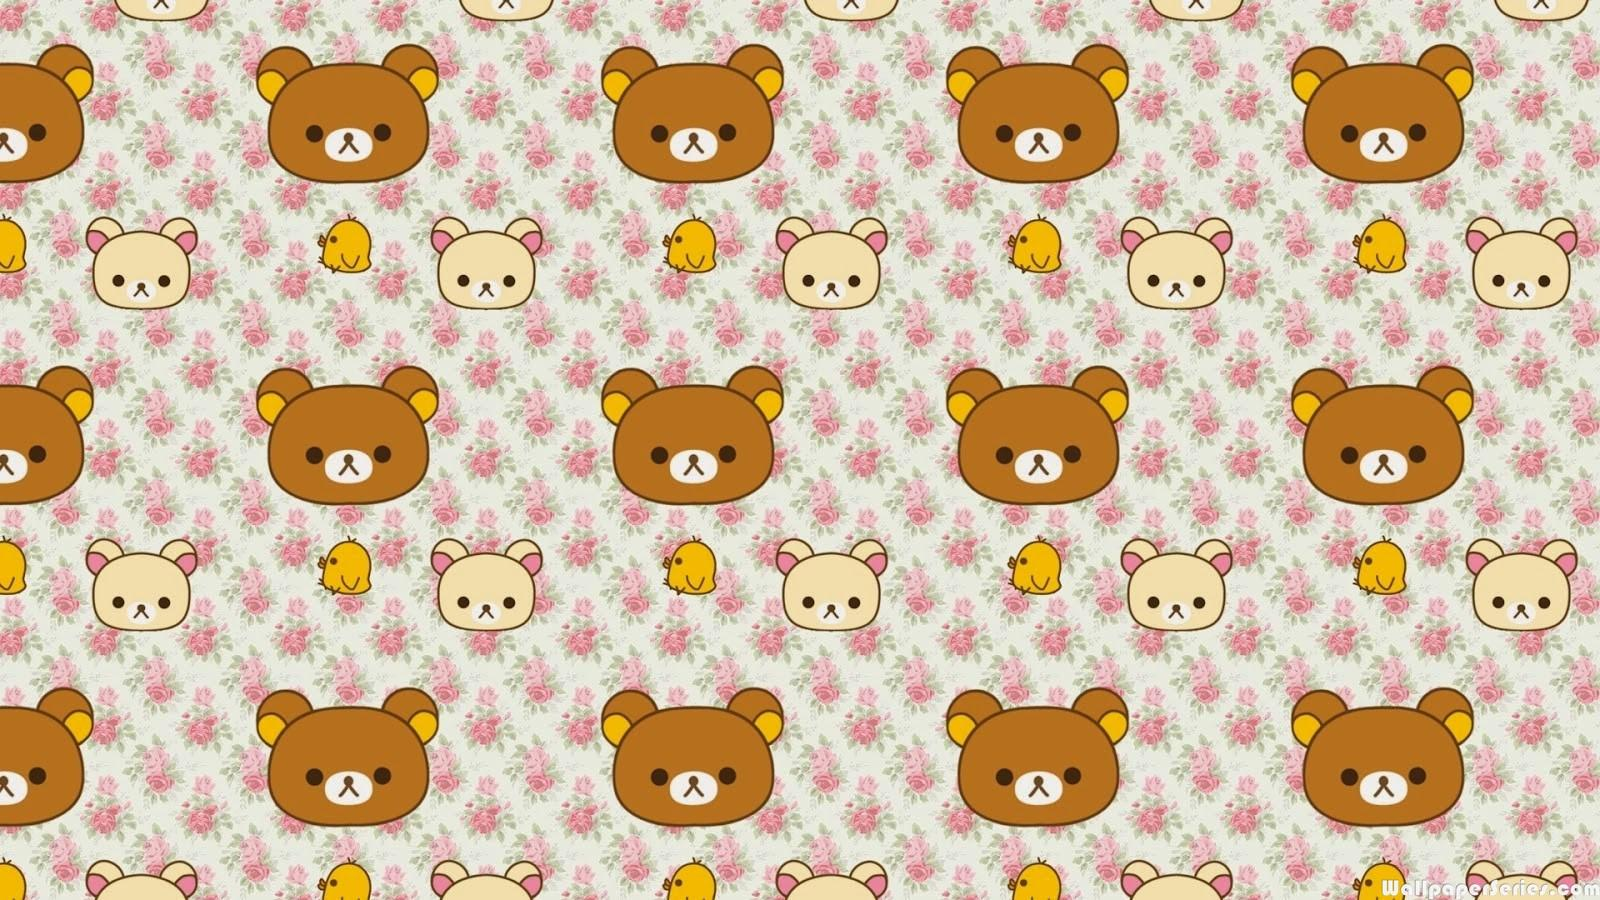 Wallpaper Cars Hd Cute Bear Rilakkuma Pattern Wallpaper Download Free